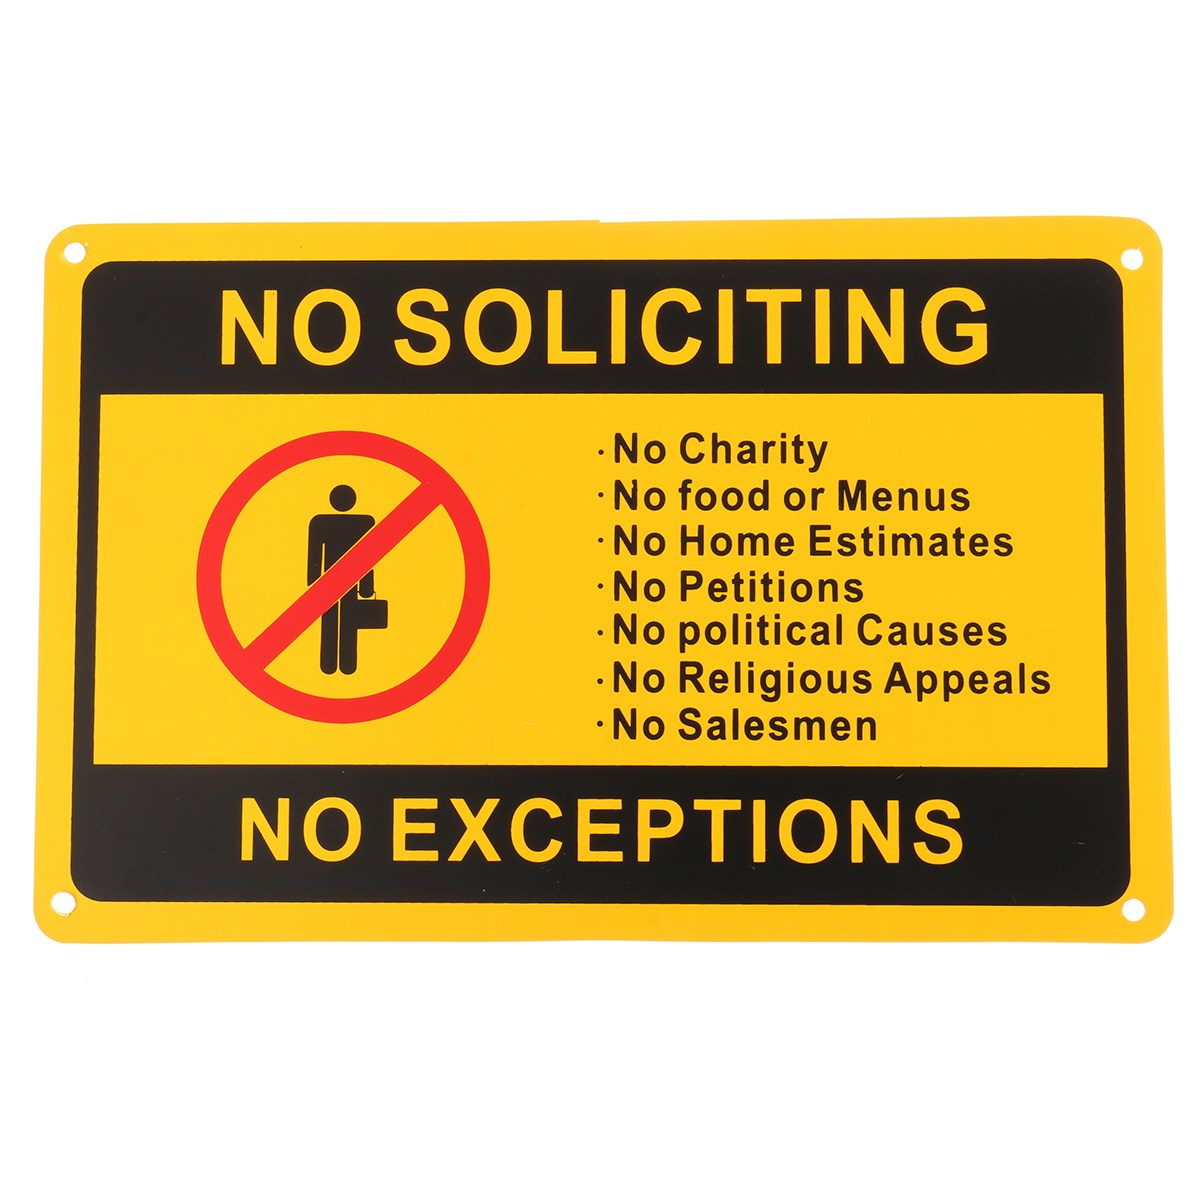 NEW Safurance NO SOLICITING NO EXCEPTIONS Front Door Security Sign Waterproof 11